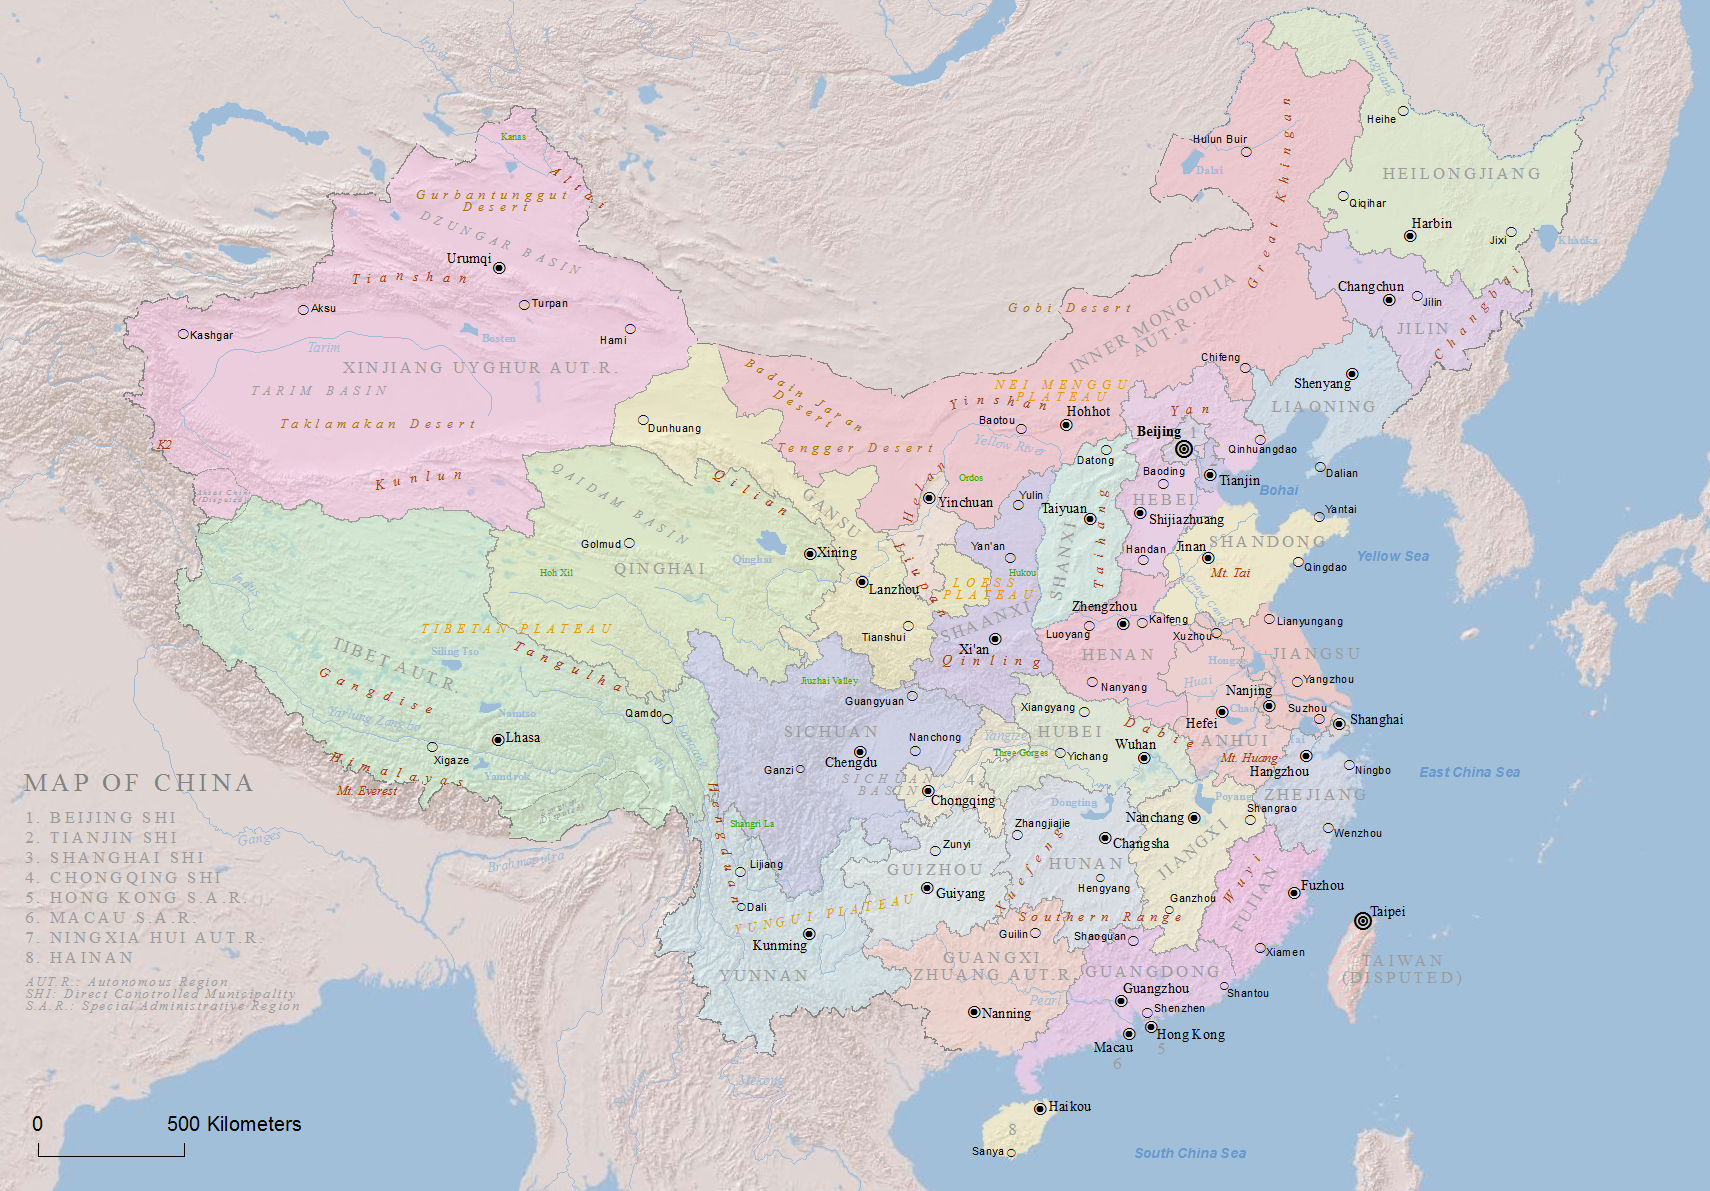 Geography of China - Wikipedia on geography books, history map, europe map, geography education, geography of india, population geography, map of australia map, geography climate, historical events map, indian geography, geography papers, map of greece, north america map, landforms map, geography game, prime meridian map, environmental geography, altitude map, current day map, italian culture map, ecological economics map, philippine geography, political map, asia map, mountain ranges map, government map, map of, climate map, human geography, the current weather map, geography of science, geographical map, astronomy map, atlas map,